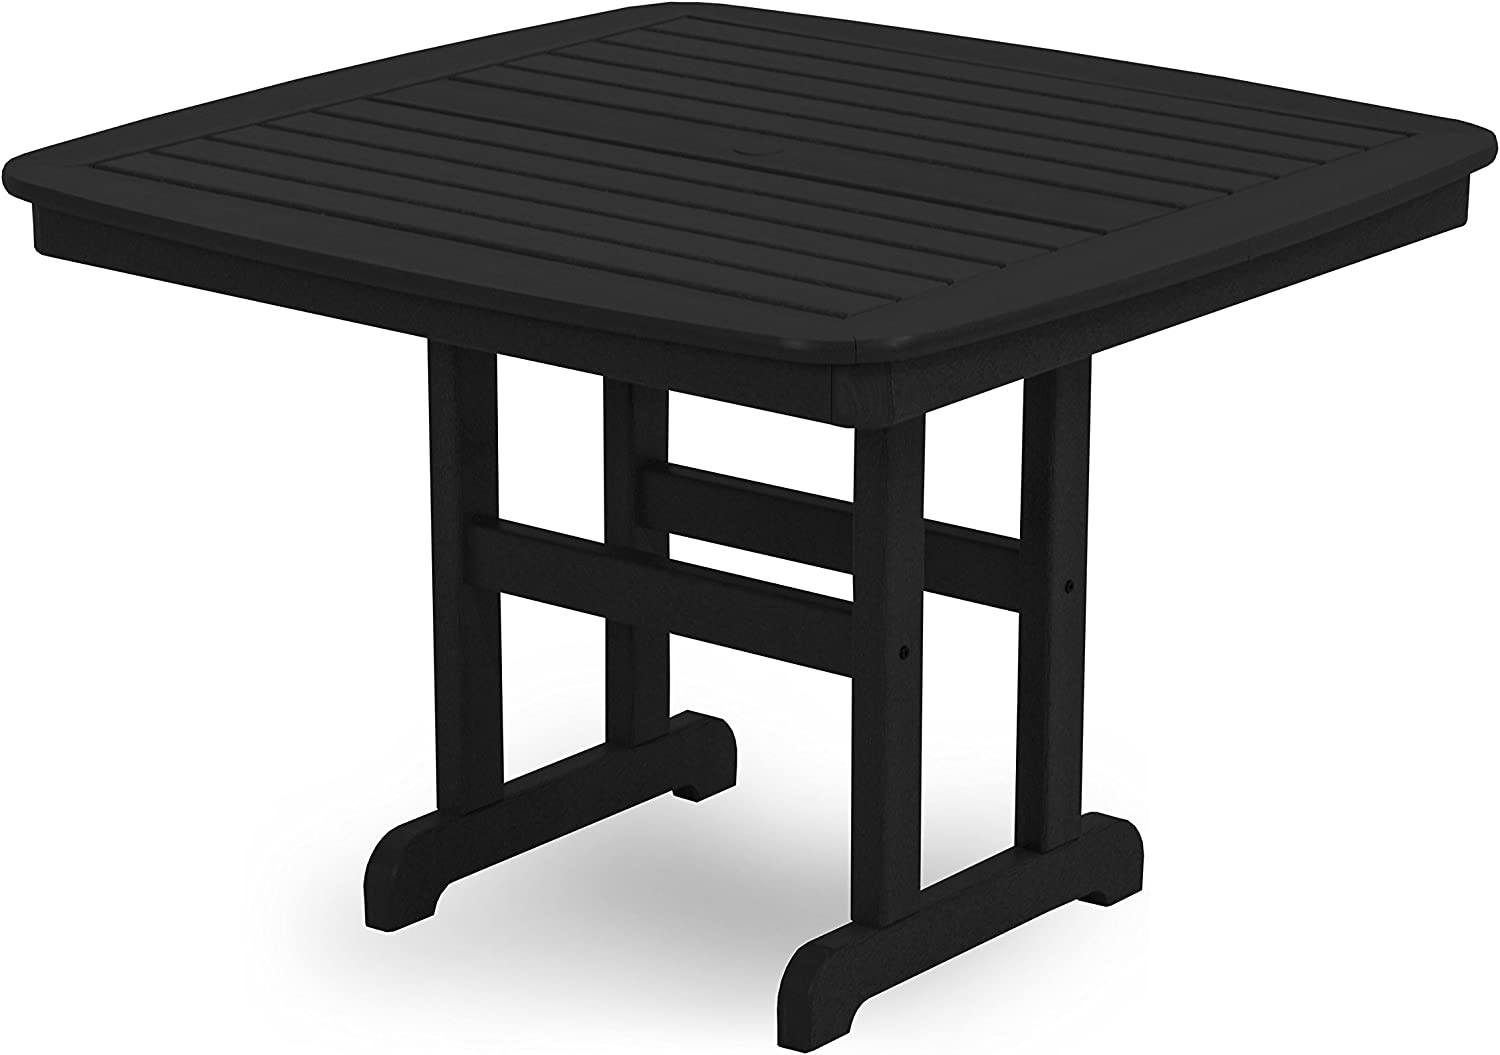 POLYWOOD NCT44BL Nautical Dining Table, 44-Inch, Black